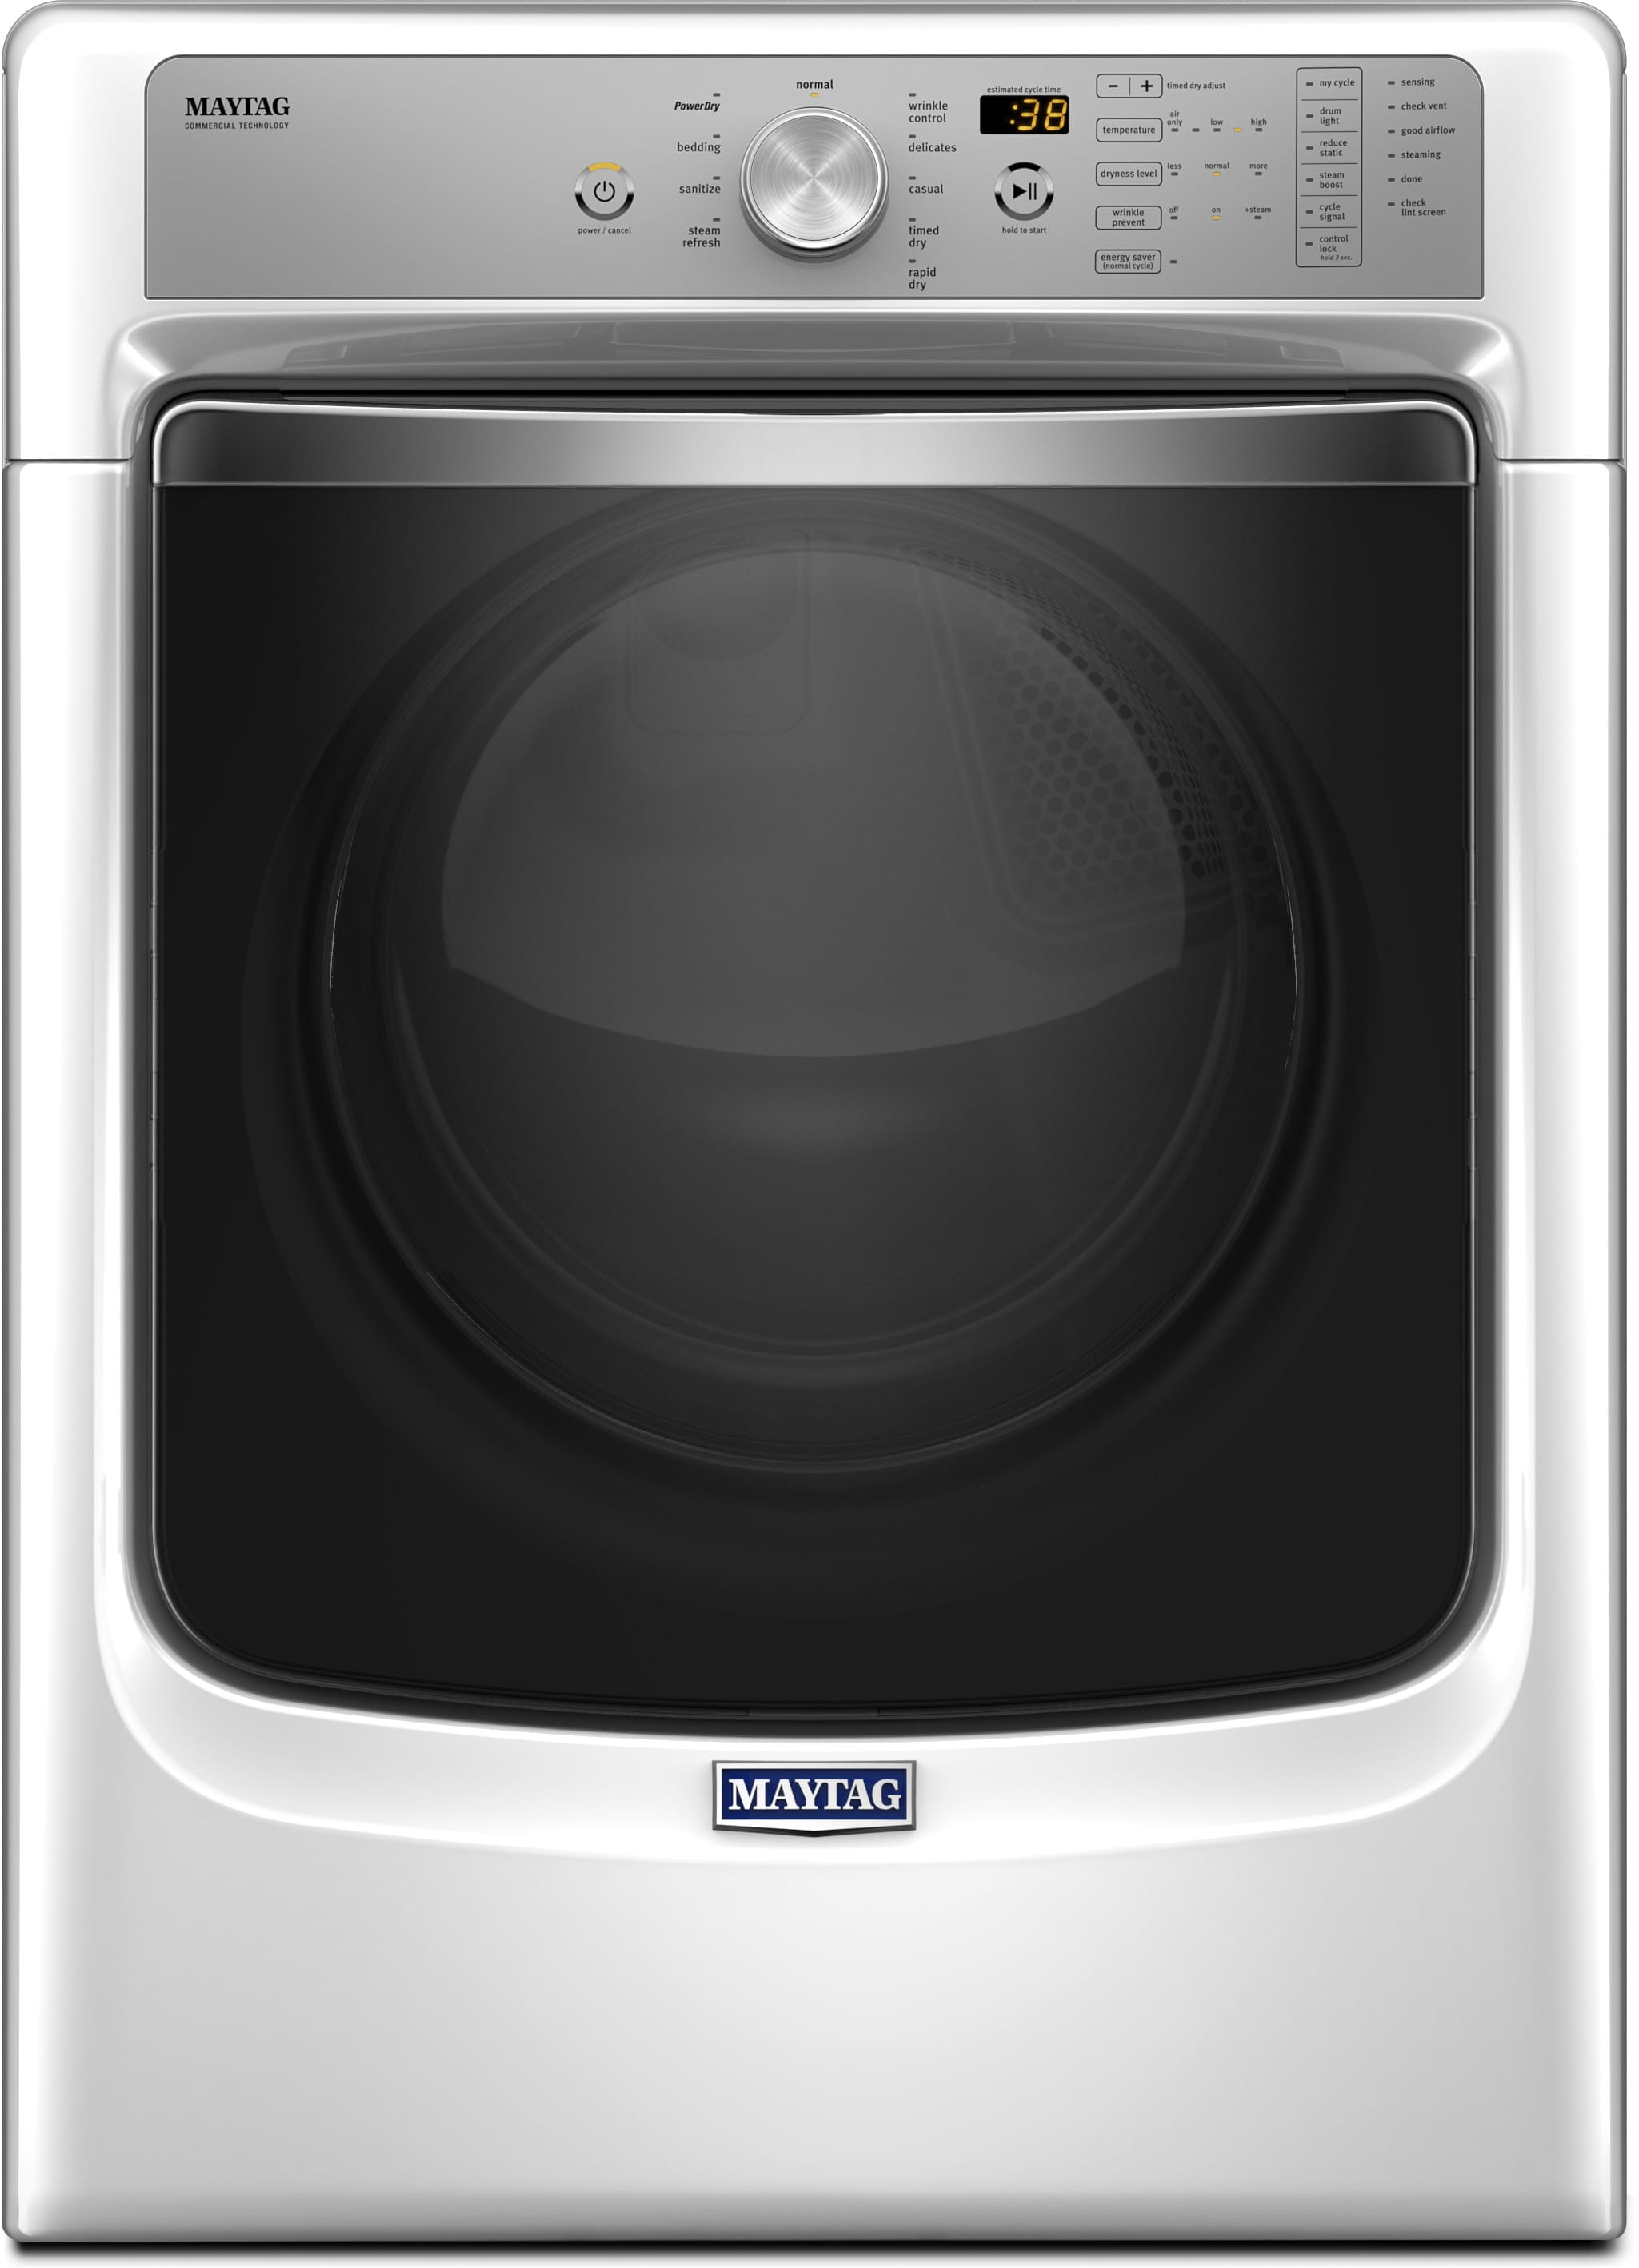 Maytag Mgd8200fw 27 Inch 7 4 Cu Ft Gas Dryer With Steam